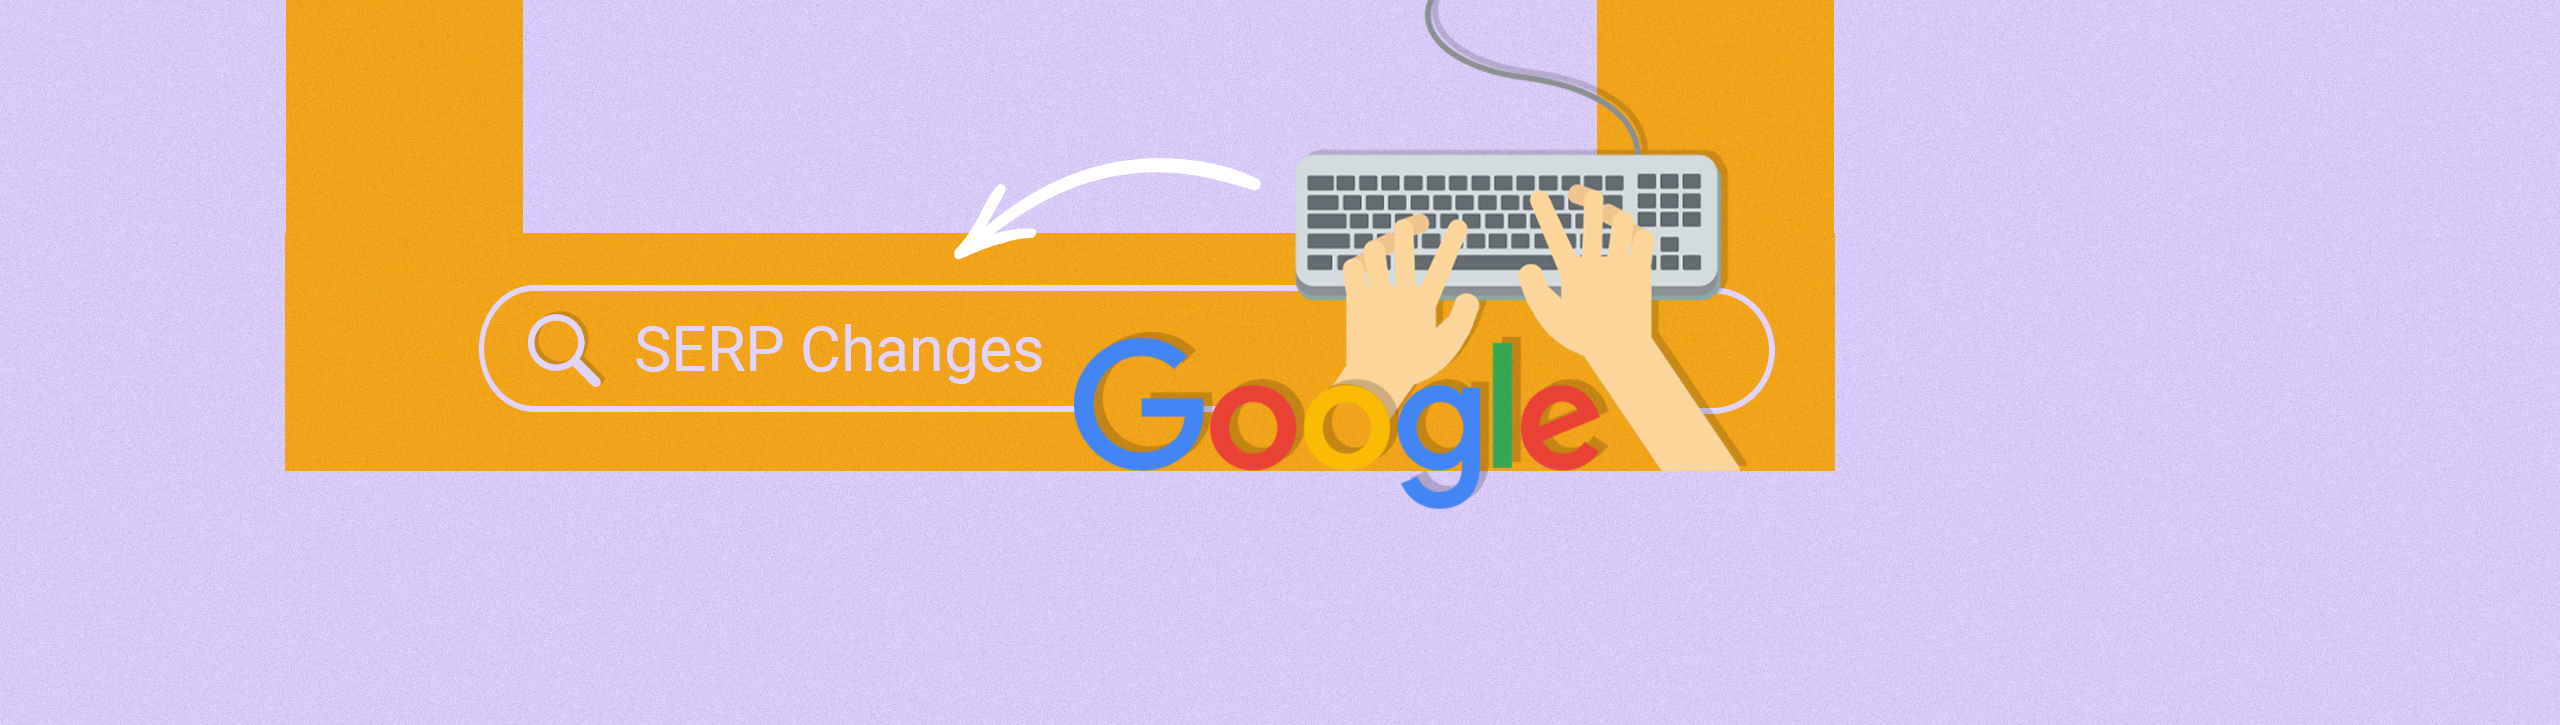 Google SERP Changes 2020 – A Brief History & Cautionary Tale